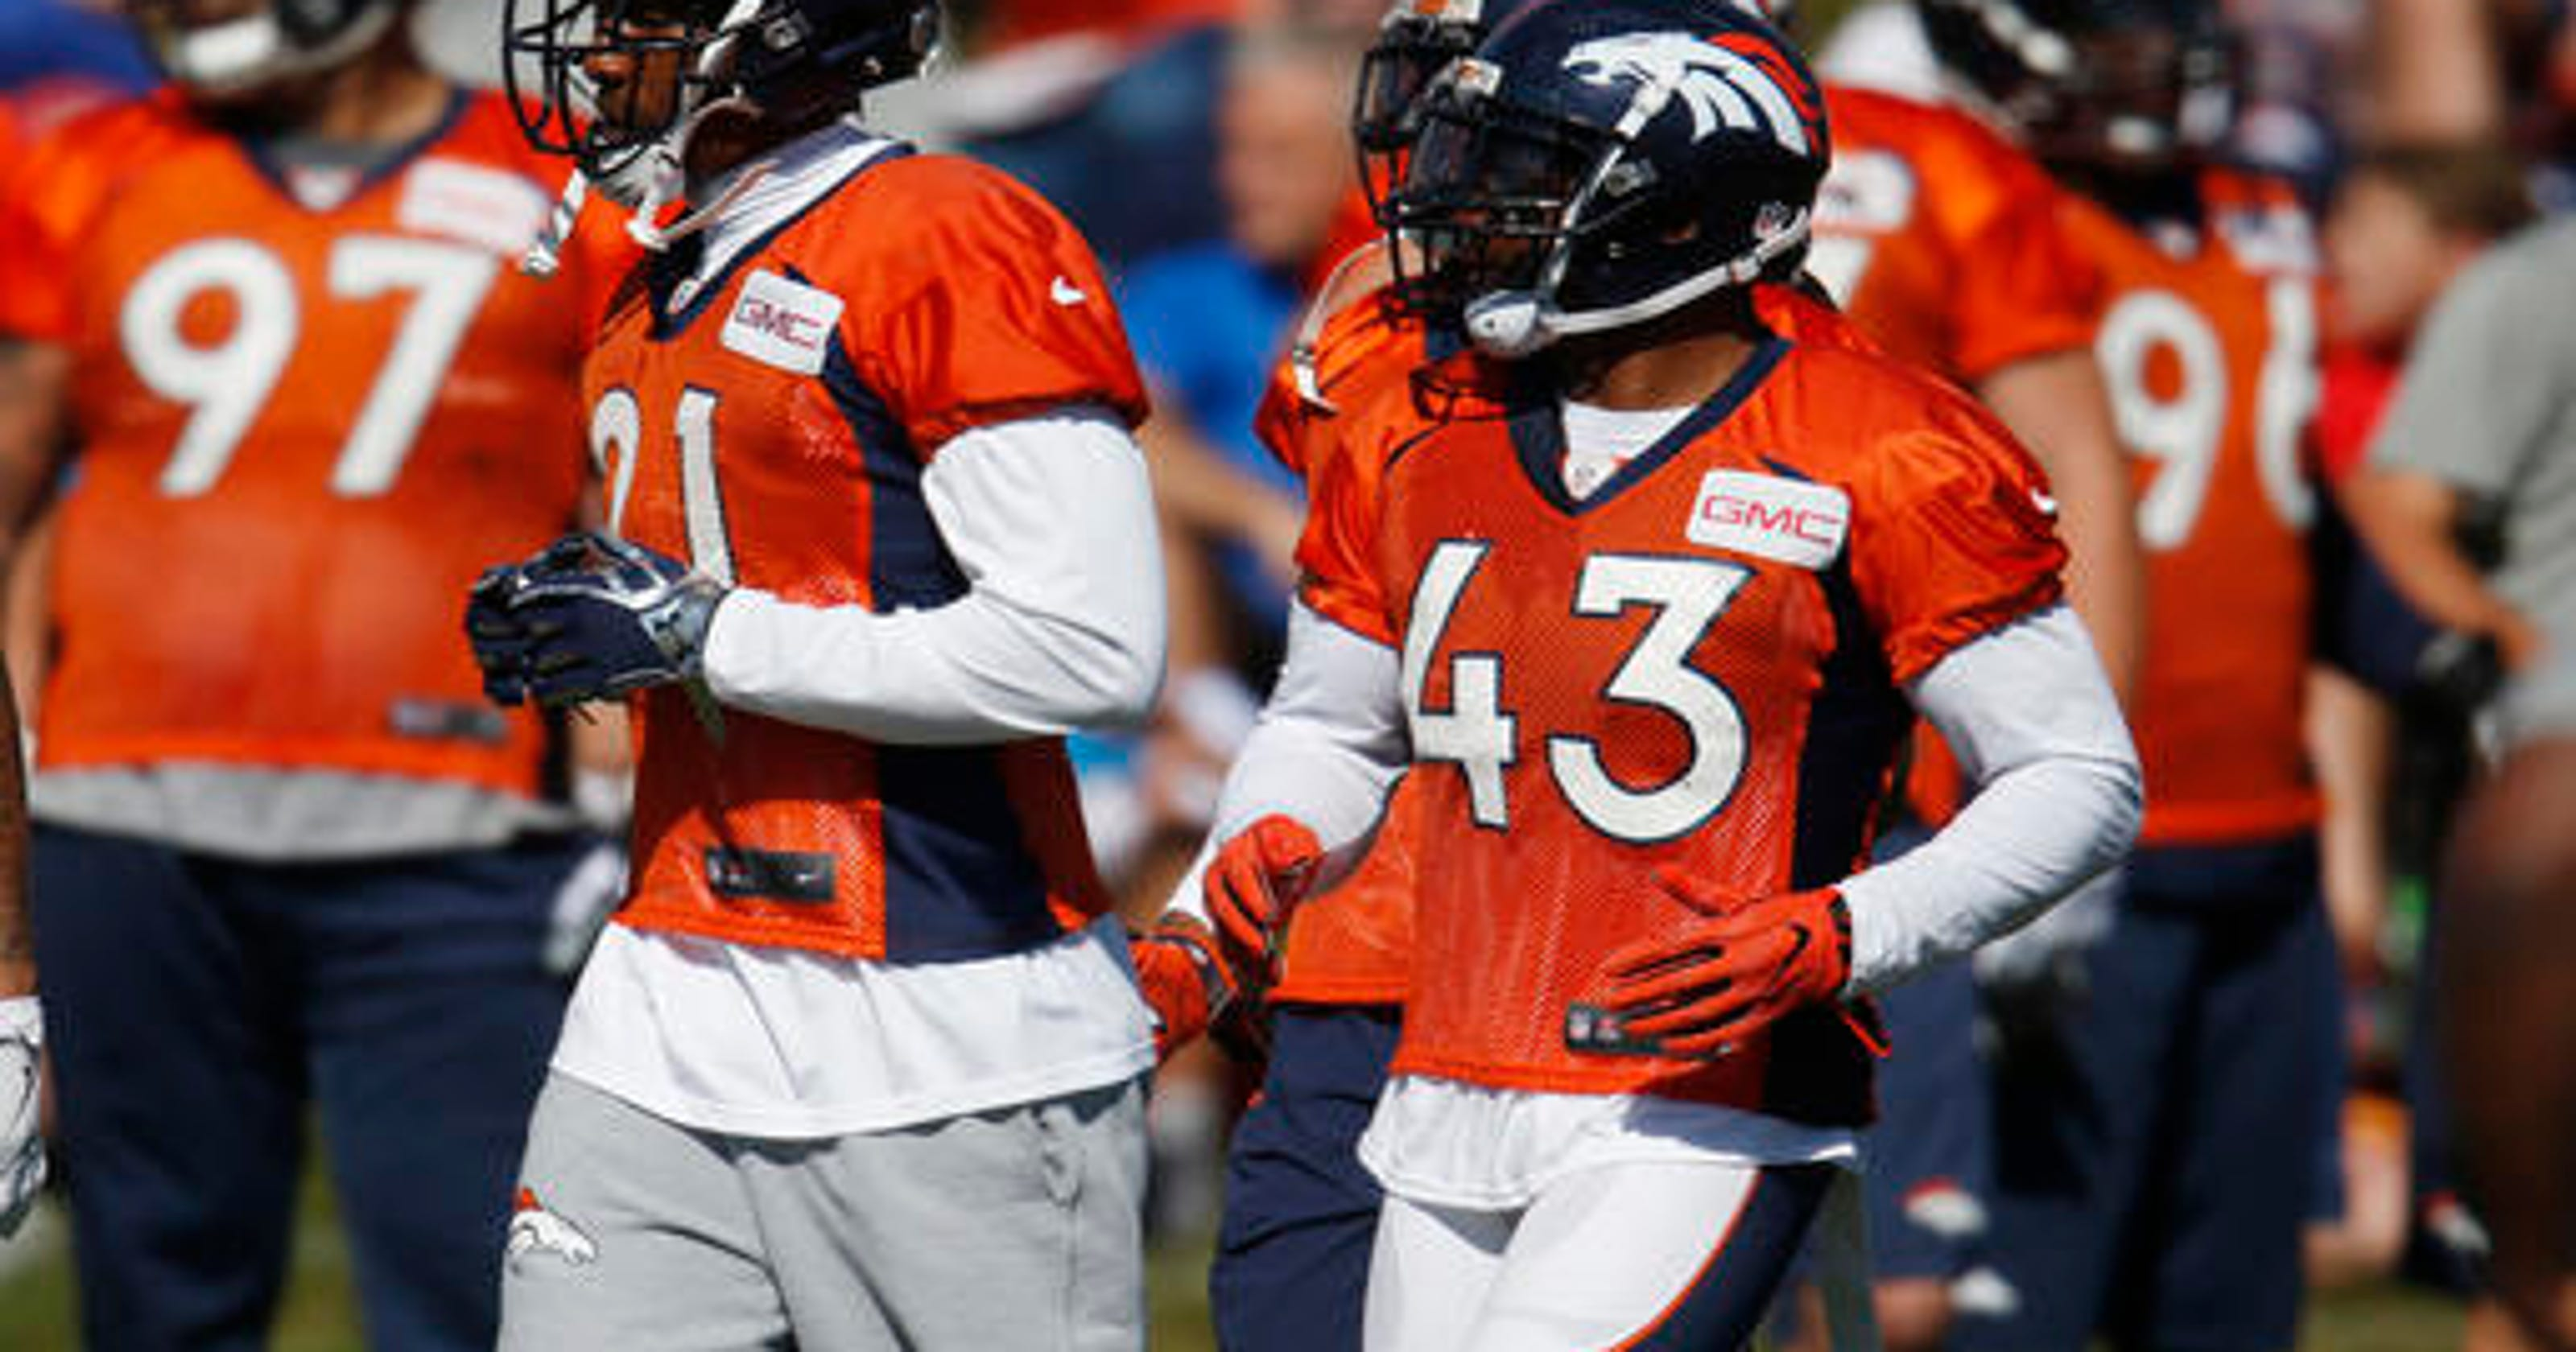 Broncos cornerback Aqib Talib makes training camp debut b6d4fa2a7